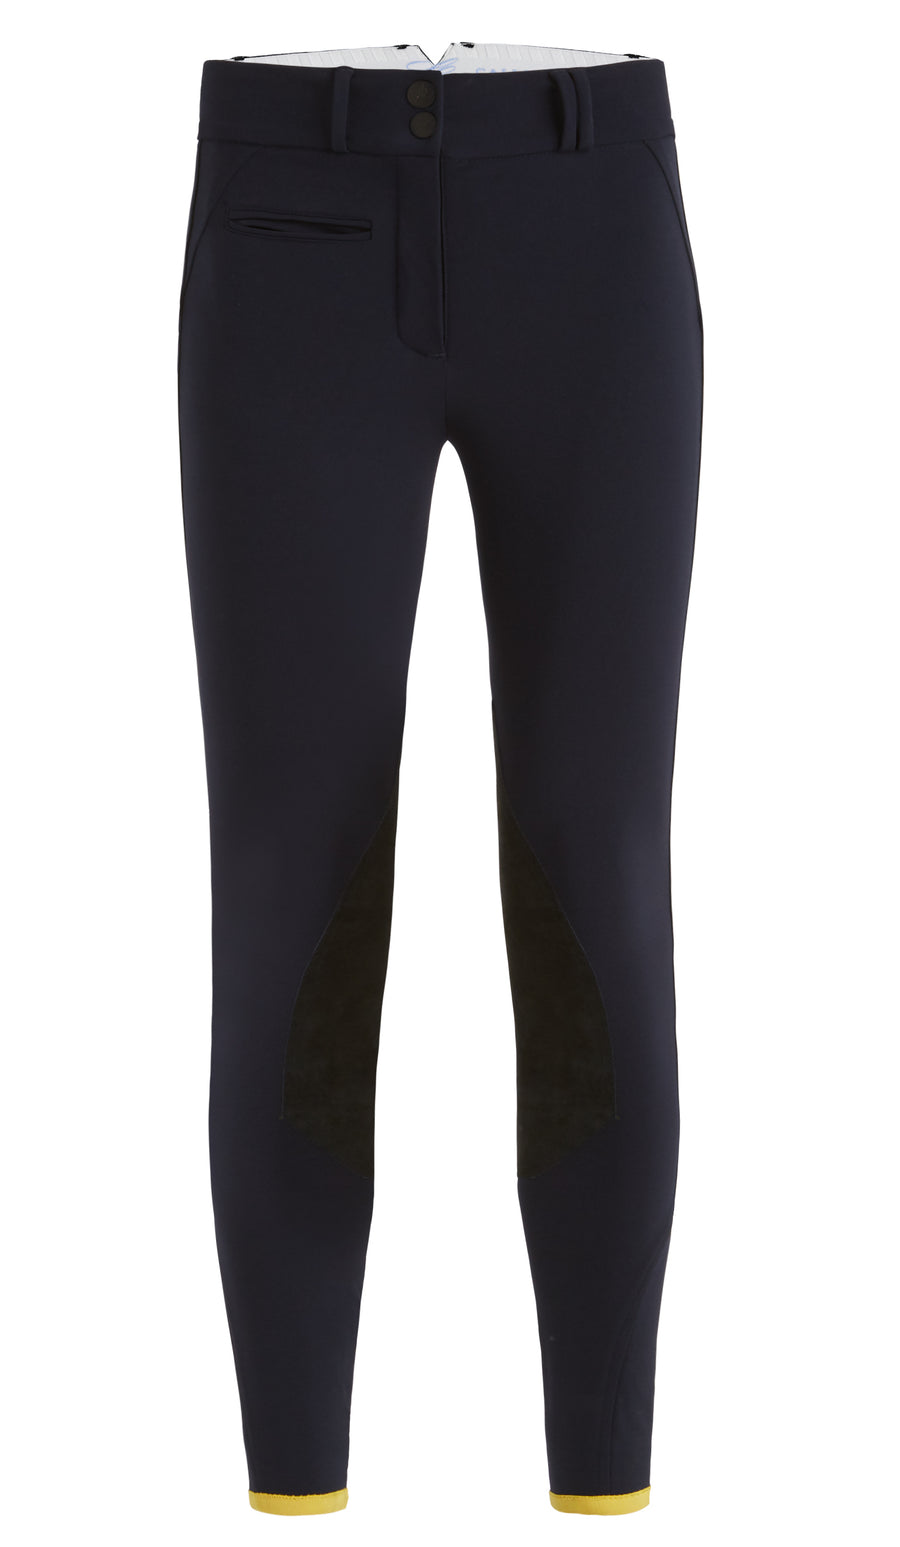 CALLIDAE The C Breeches in Navy - Women's 32